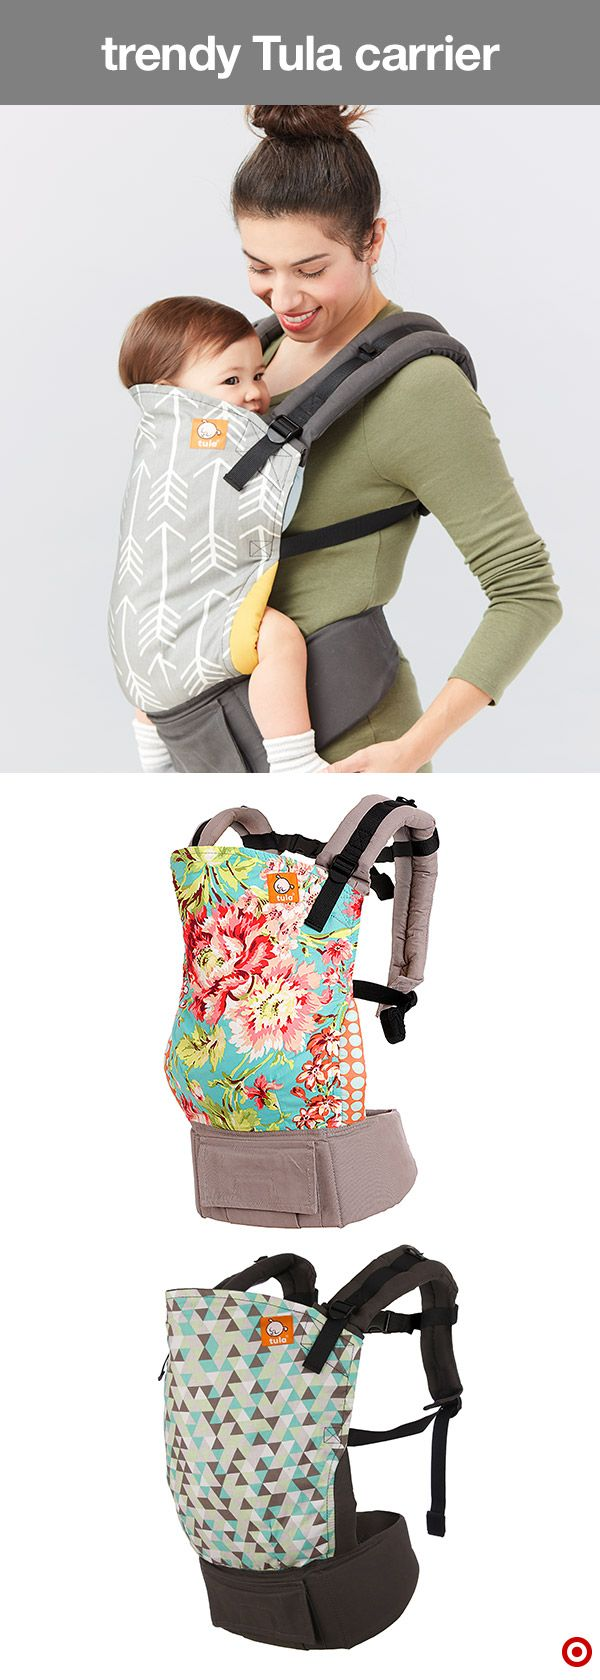 Are you part of the club—the Tula Mom's club? Get yourself a Tula Baby carrier and you're in. What's so great about a Tula? Everything! These ergonomic baby carriers are easy to use and allow for babywearing from infant to toddler. They come in cool, on-trend prints and colors, have a removable hood, durable buckles, adjustable straps, large front pocket, supportive padding and more. This baby carrier is the perfect addition to your Target Baby Registry.